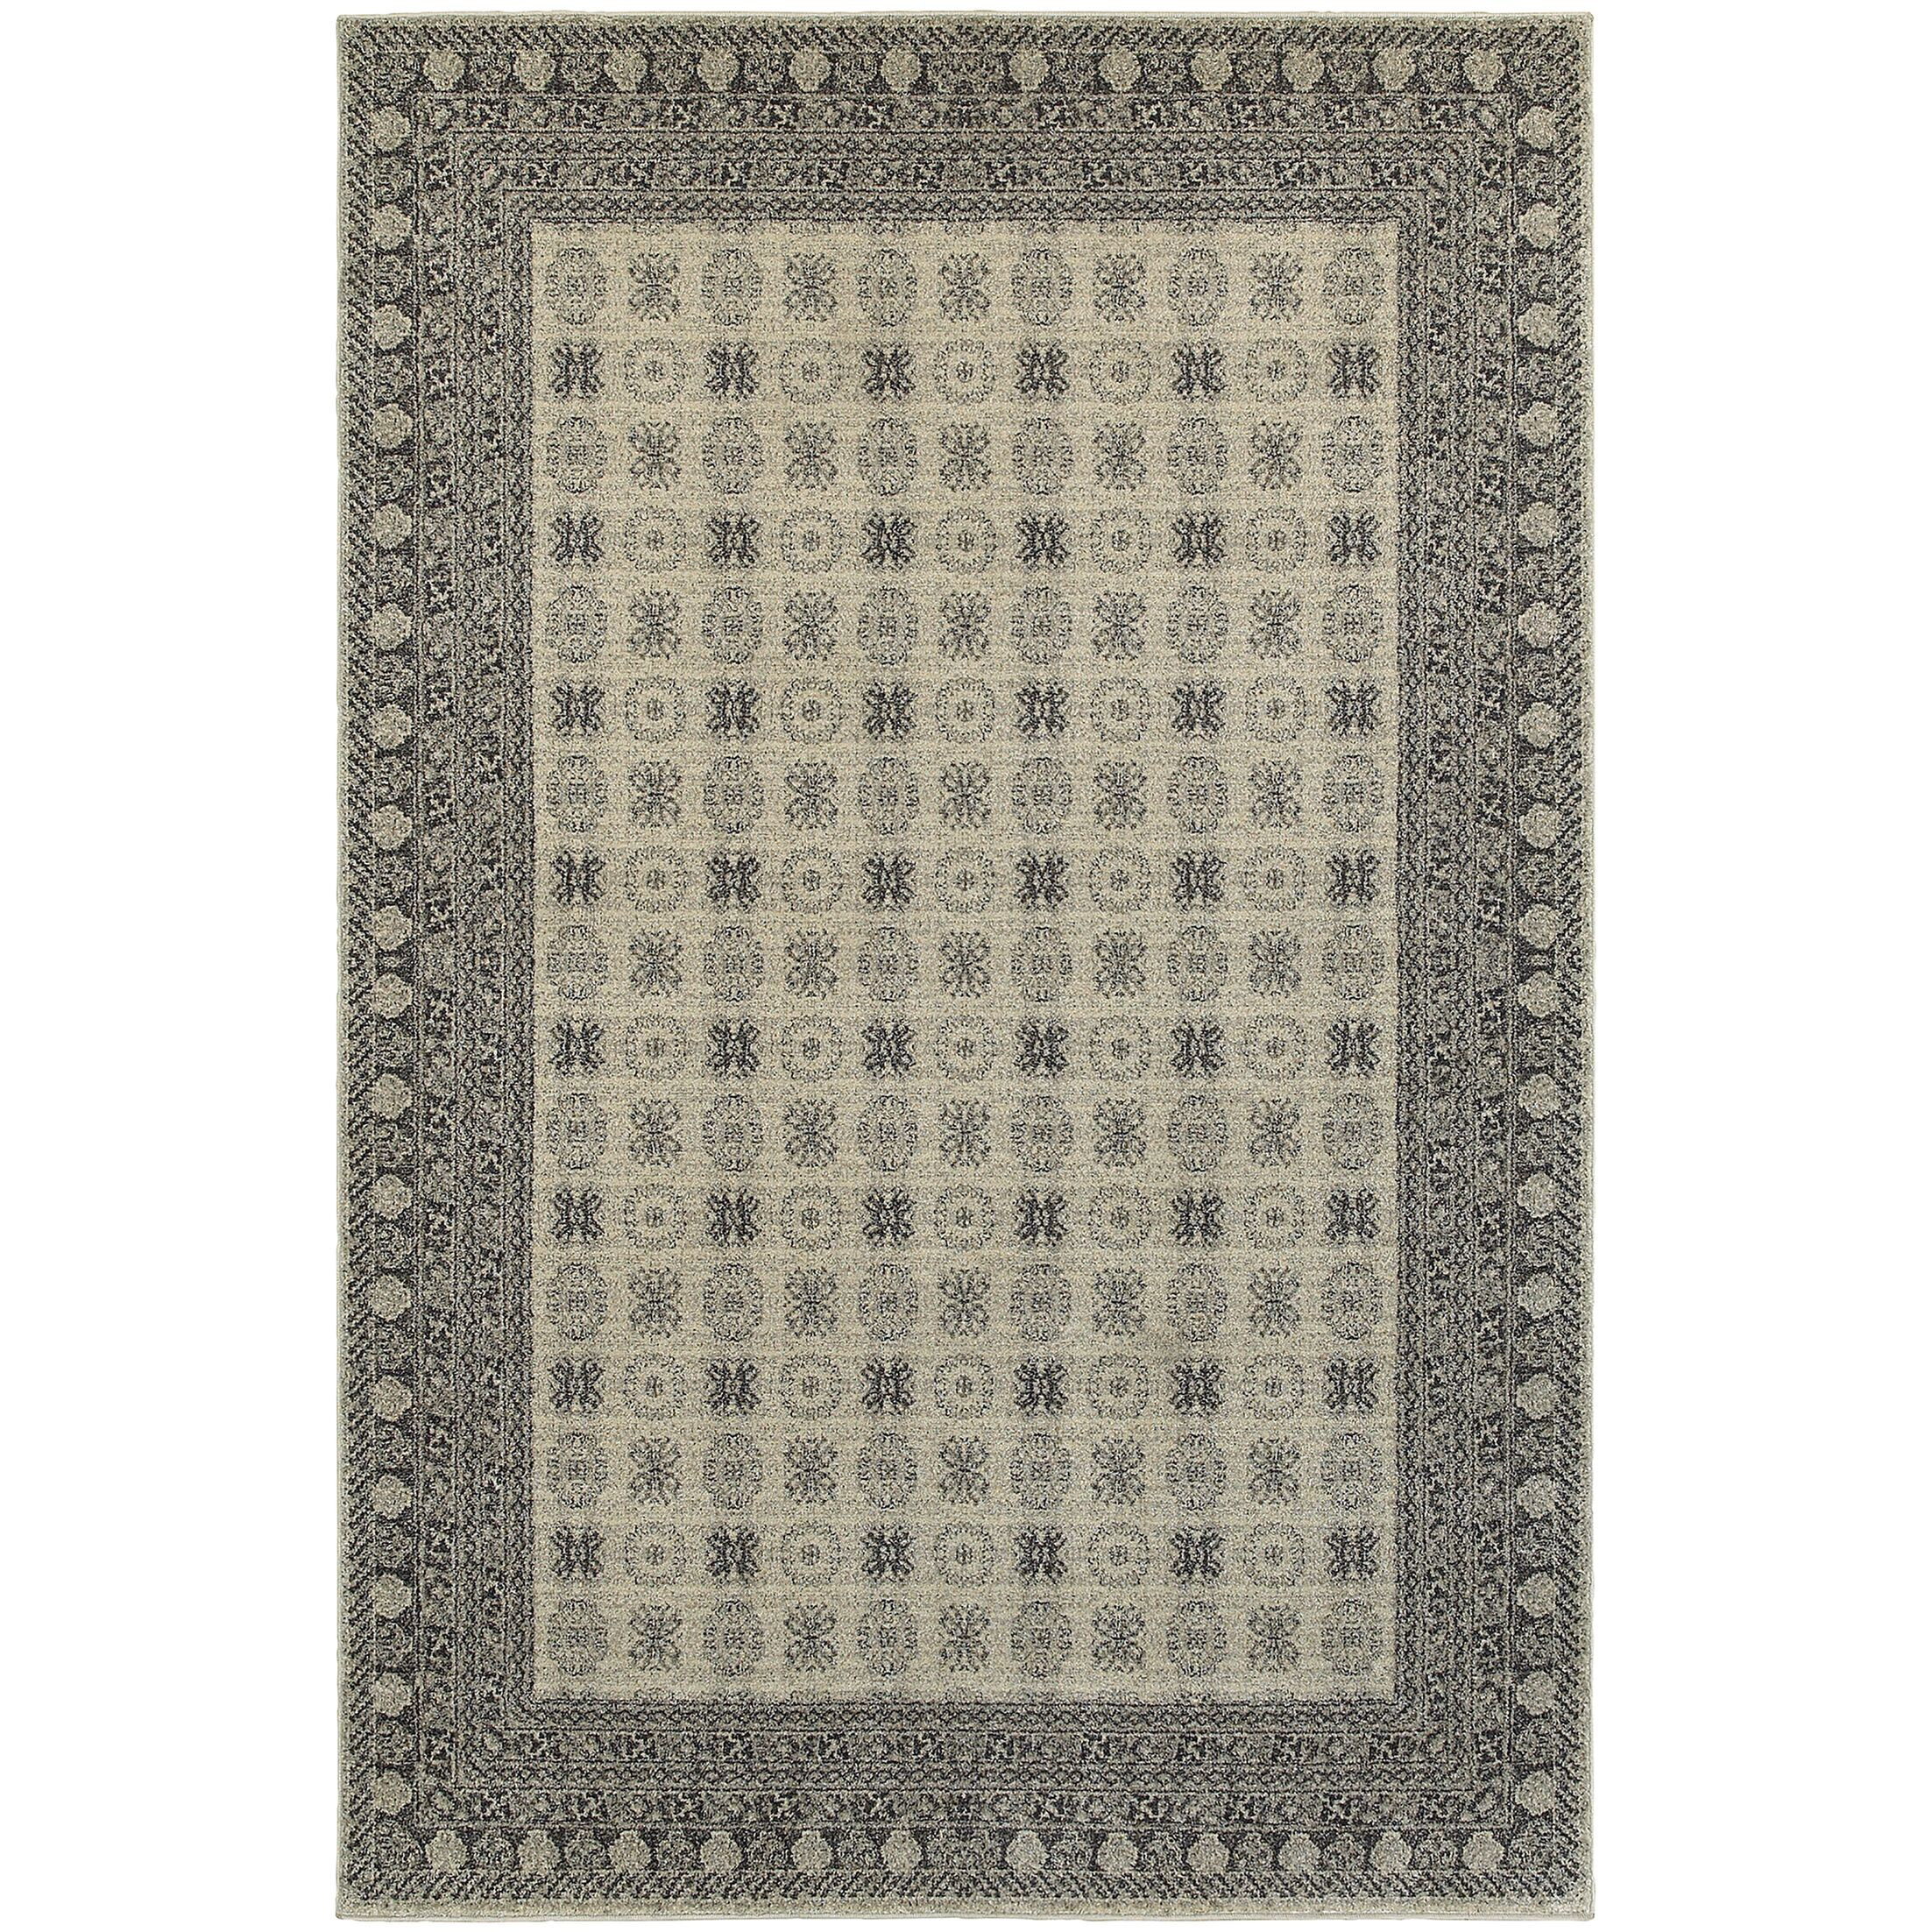 Cynthiana Ivory/Gray Area Rug Rug Size: Runner 2'3